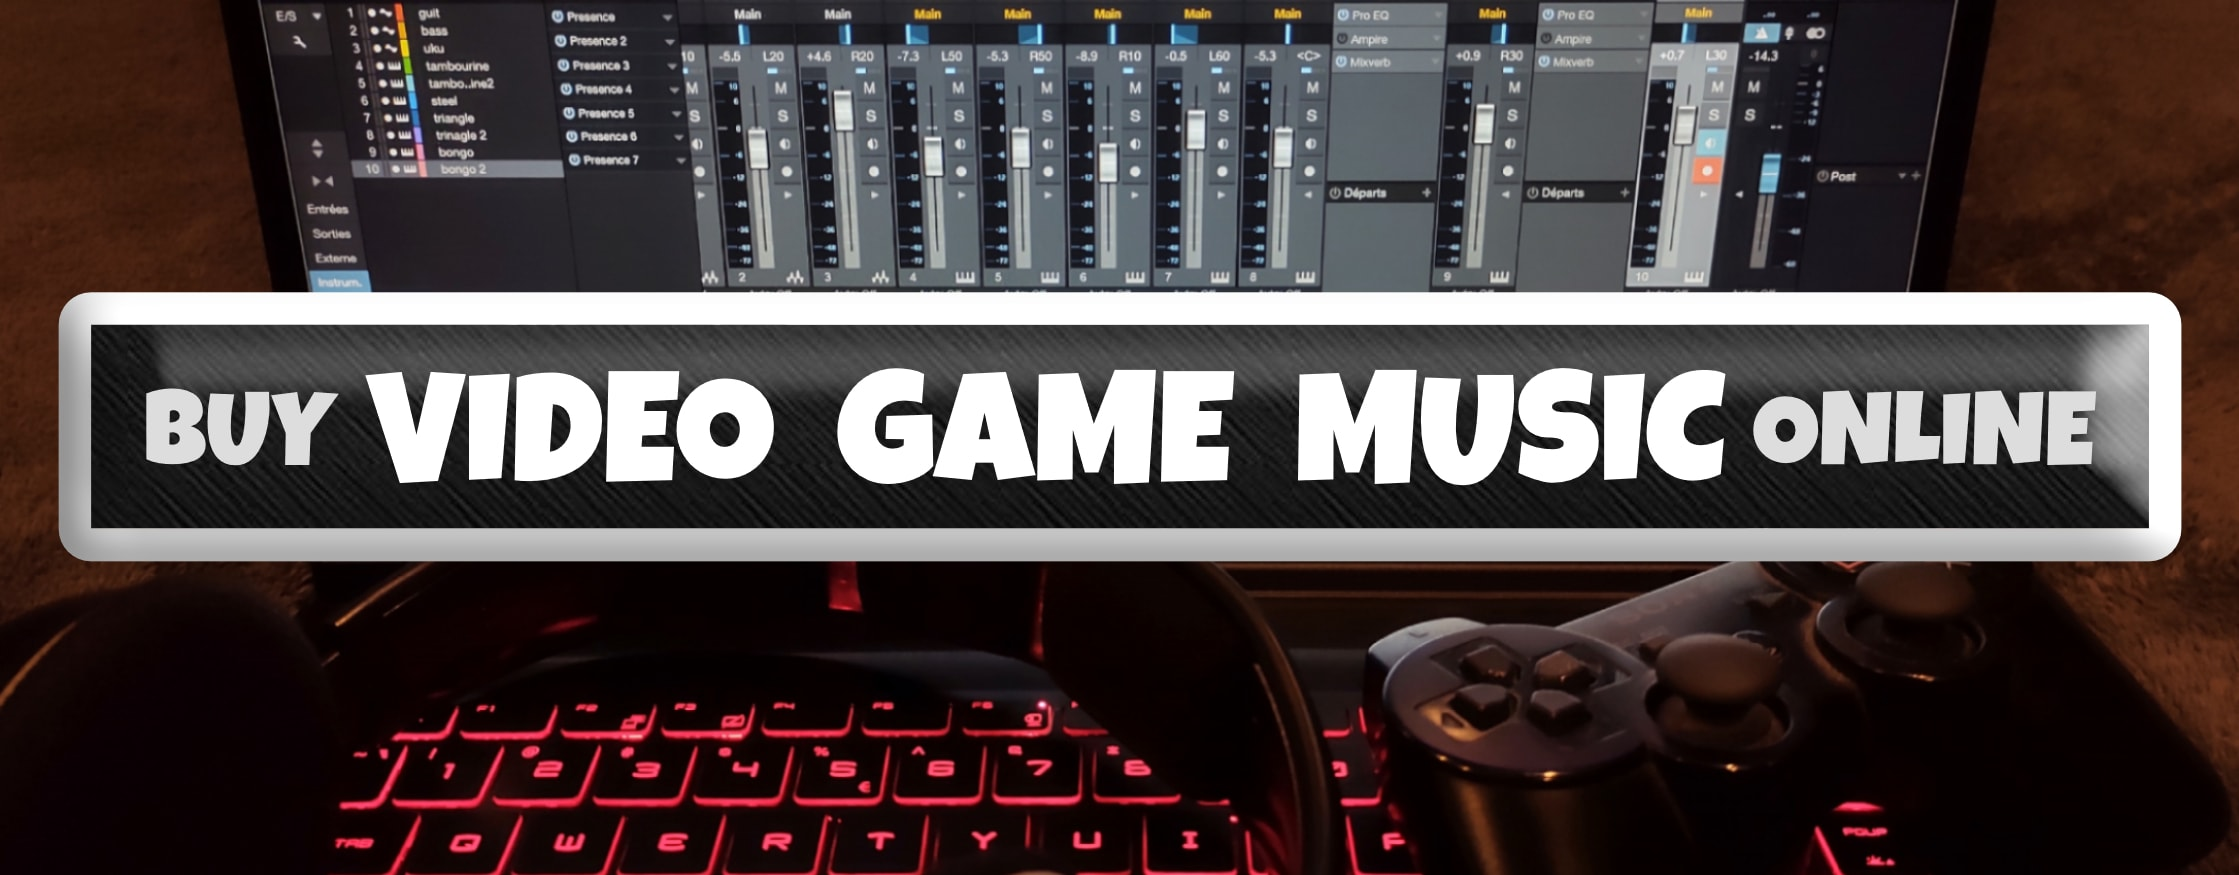 buy video game music online